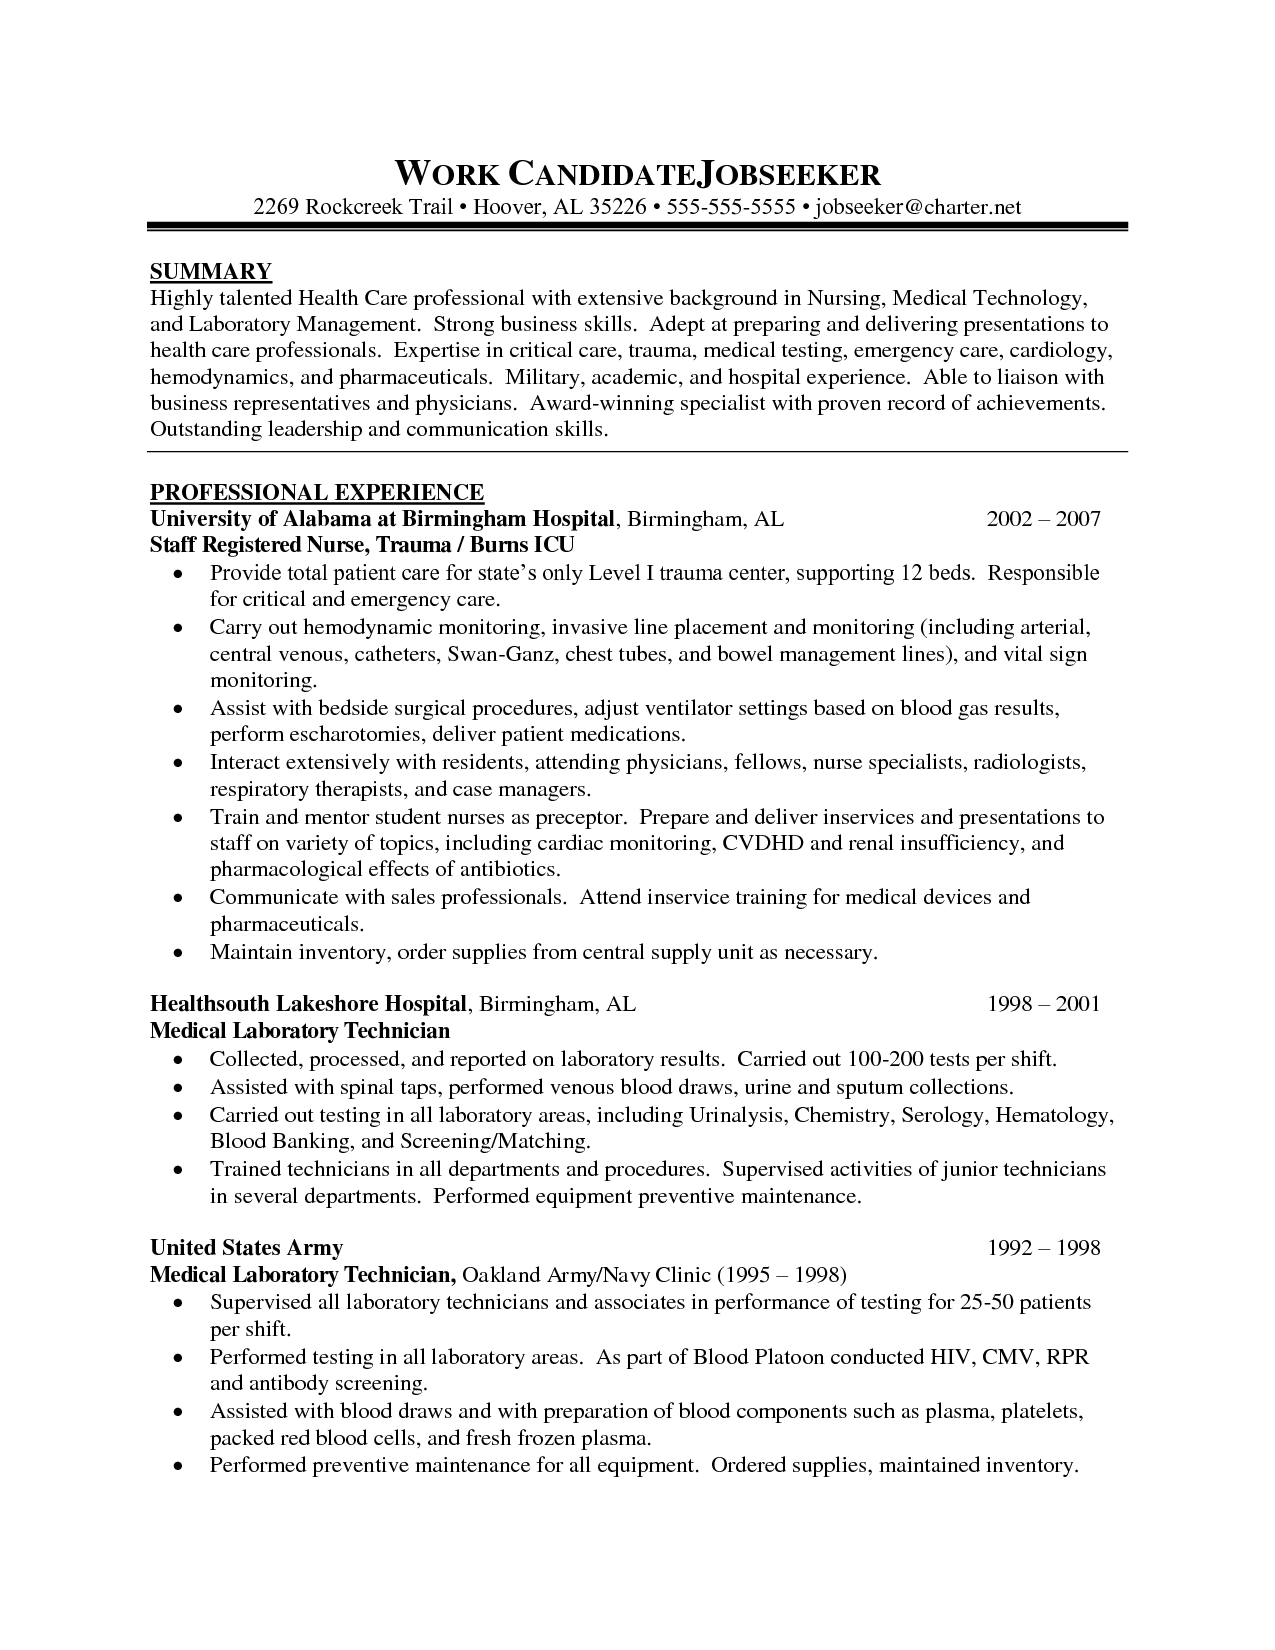 Emergency Room Nurse Resume Unique Resume Examples Nursing Student  Pinterest  Professional Resume .